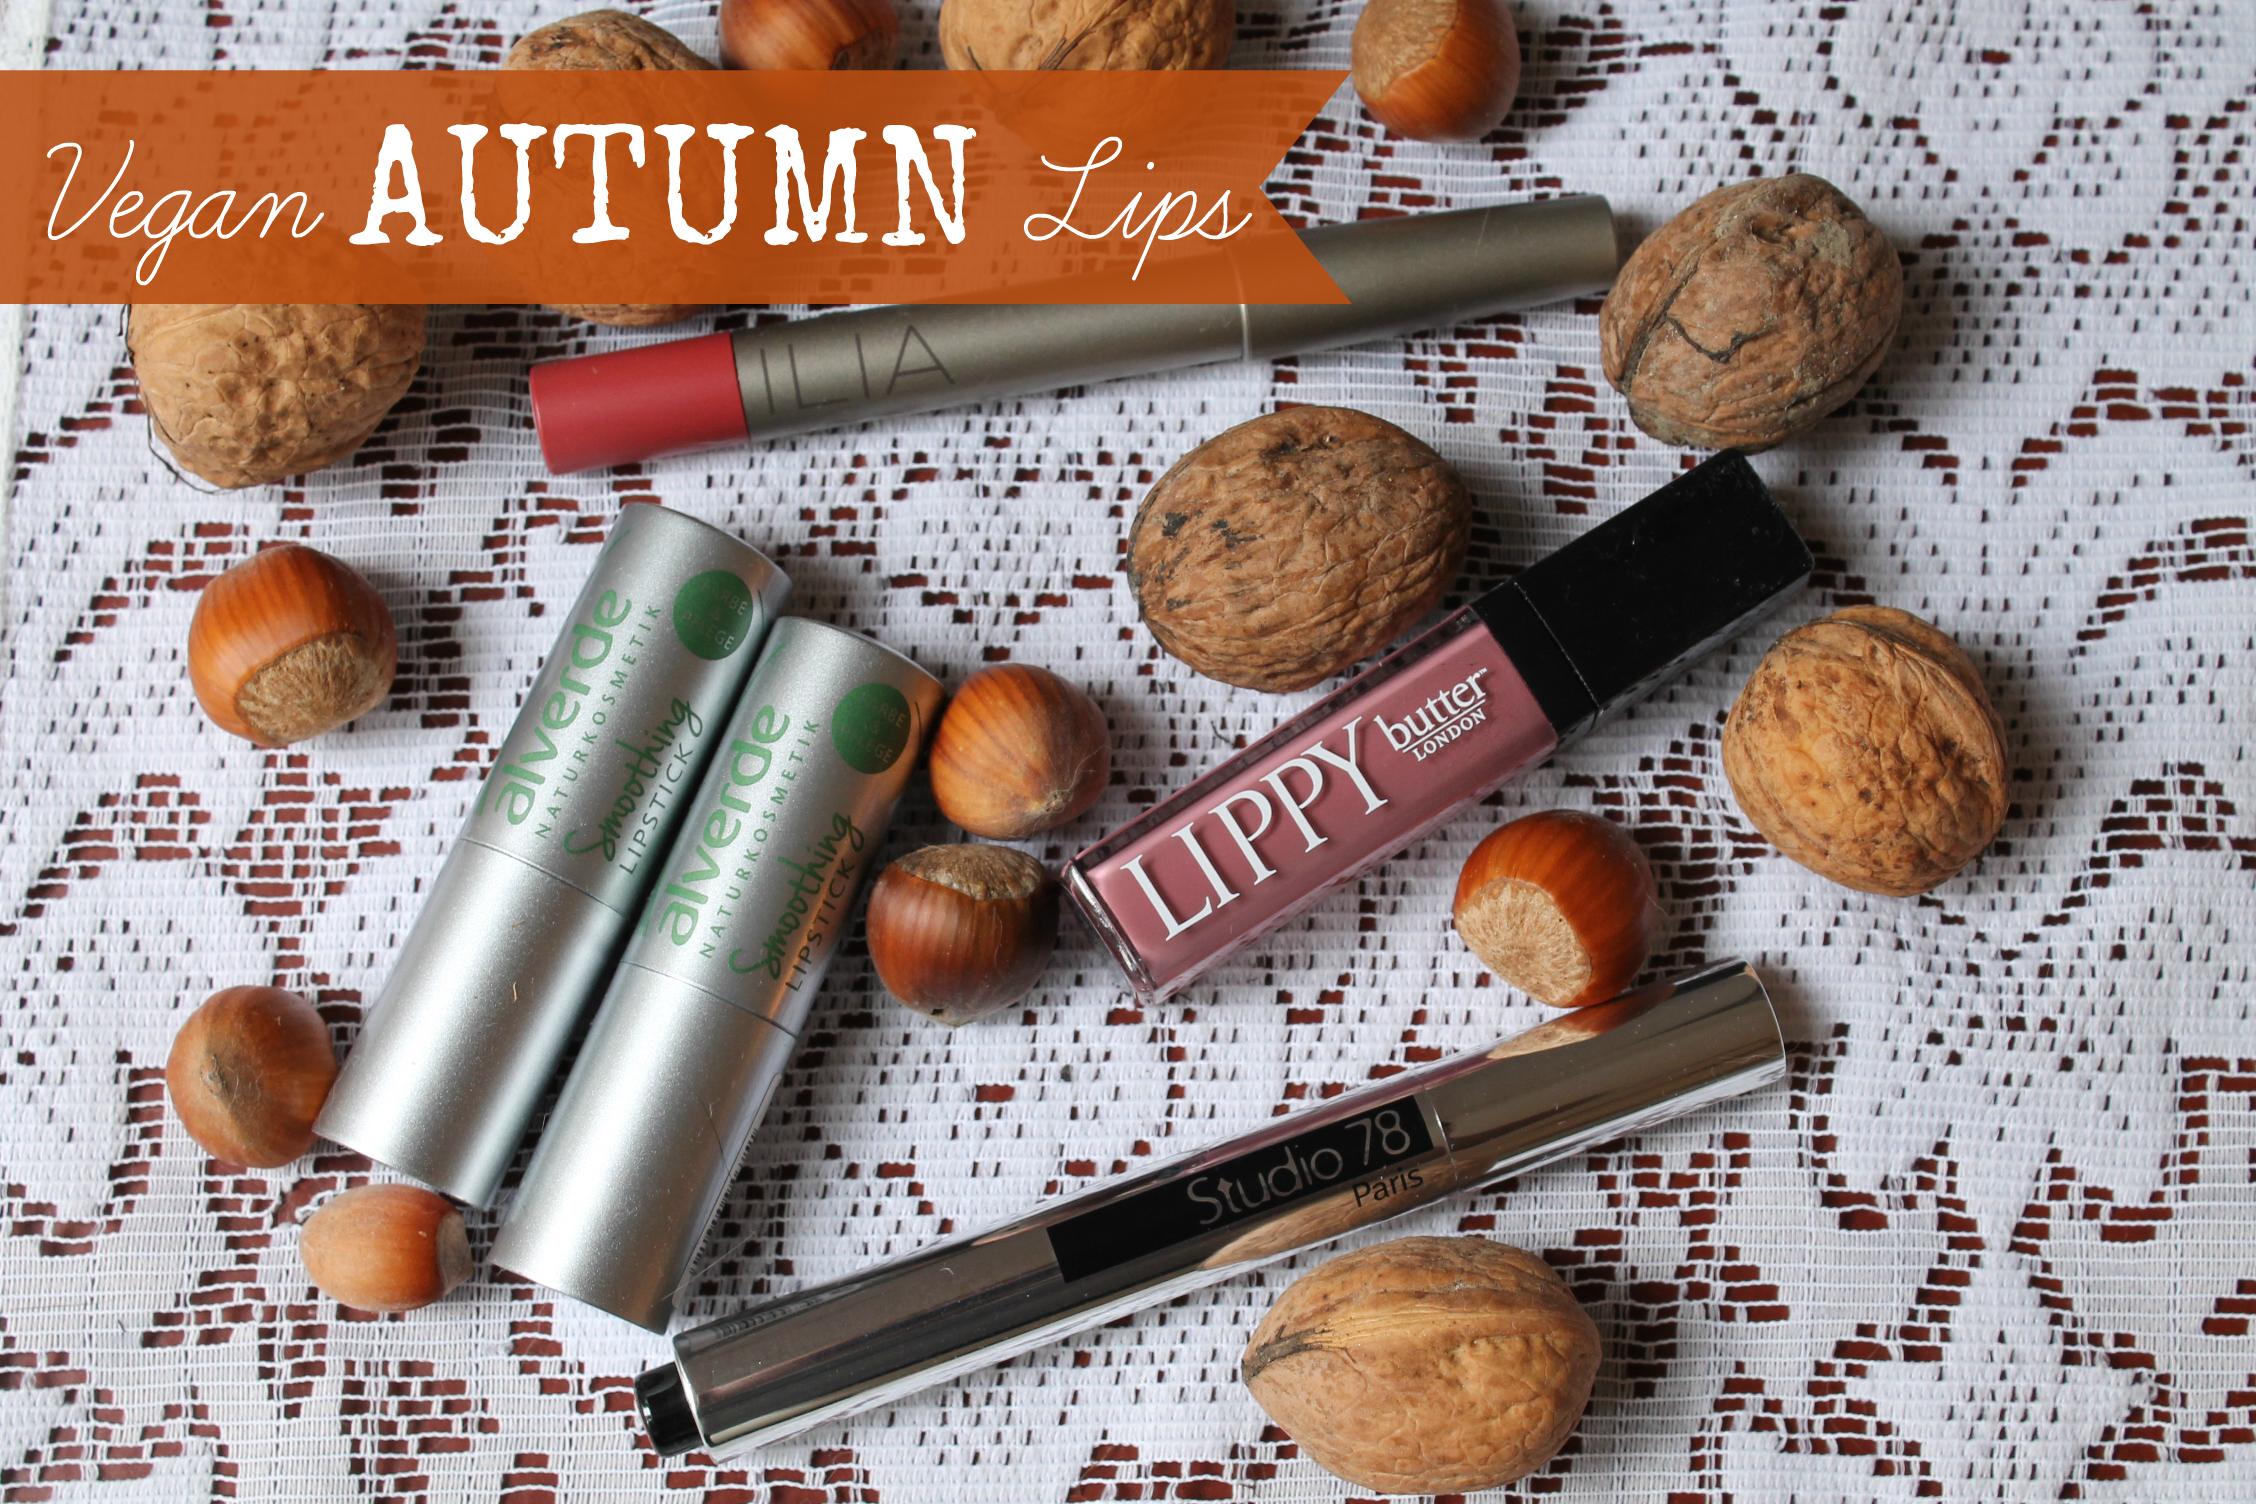 vegane_lippenstifte_herbst_once upon a cream_labelled